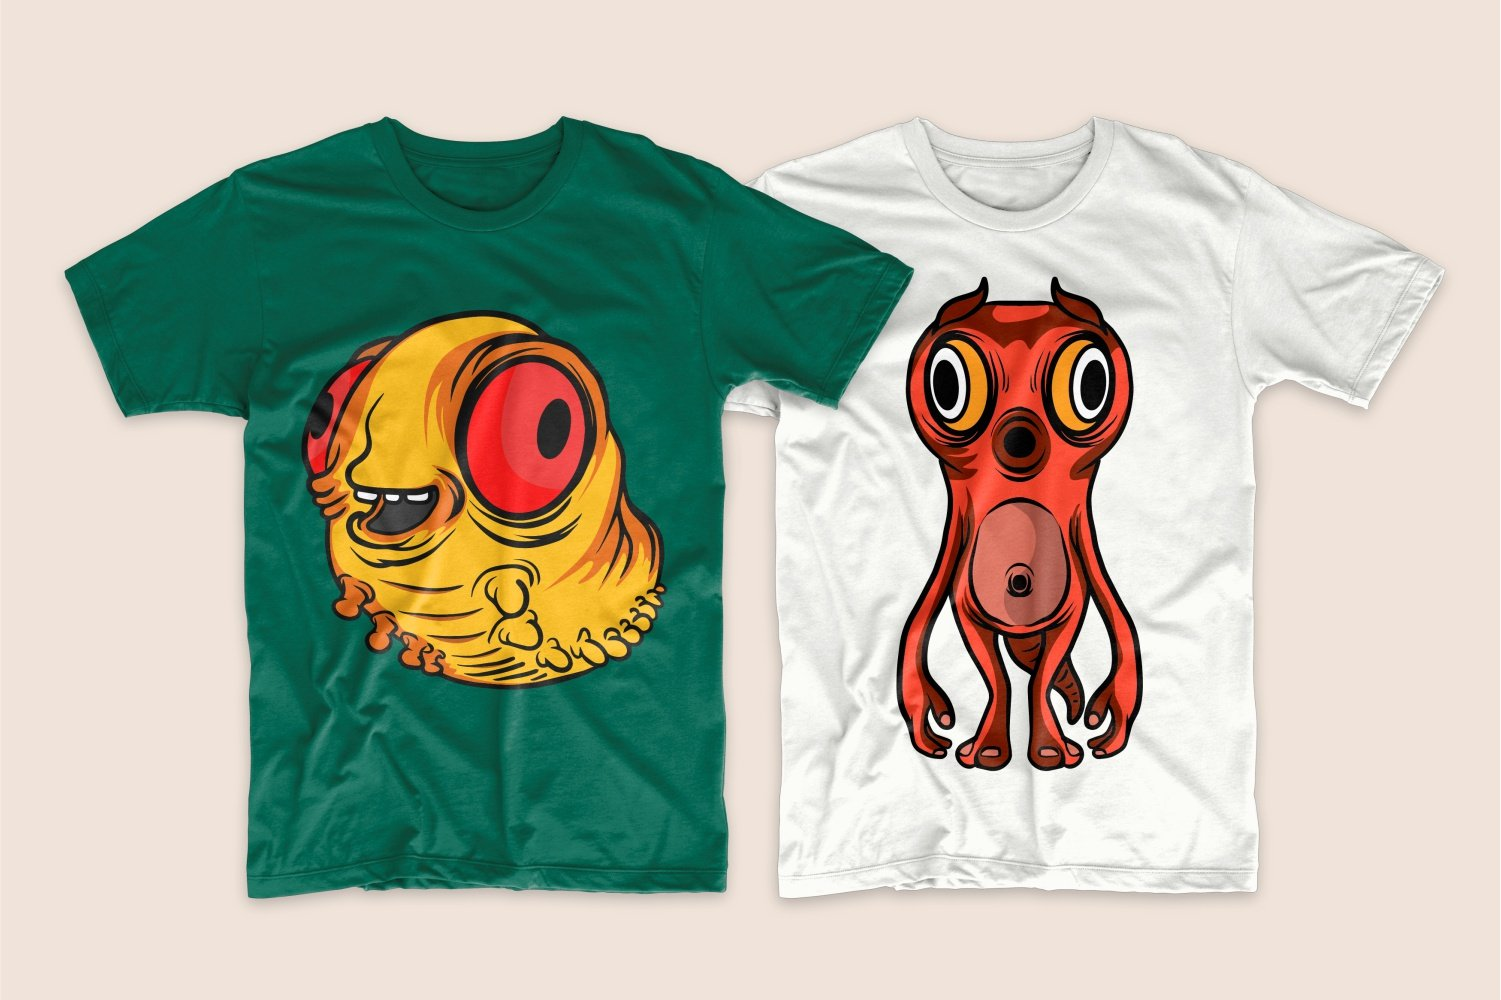 Green T-shirt with a yellow centipede and white with a red monster.